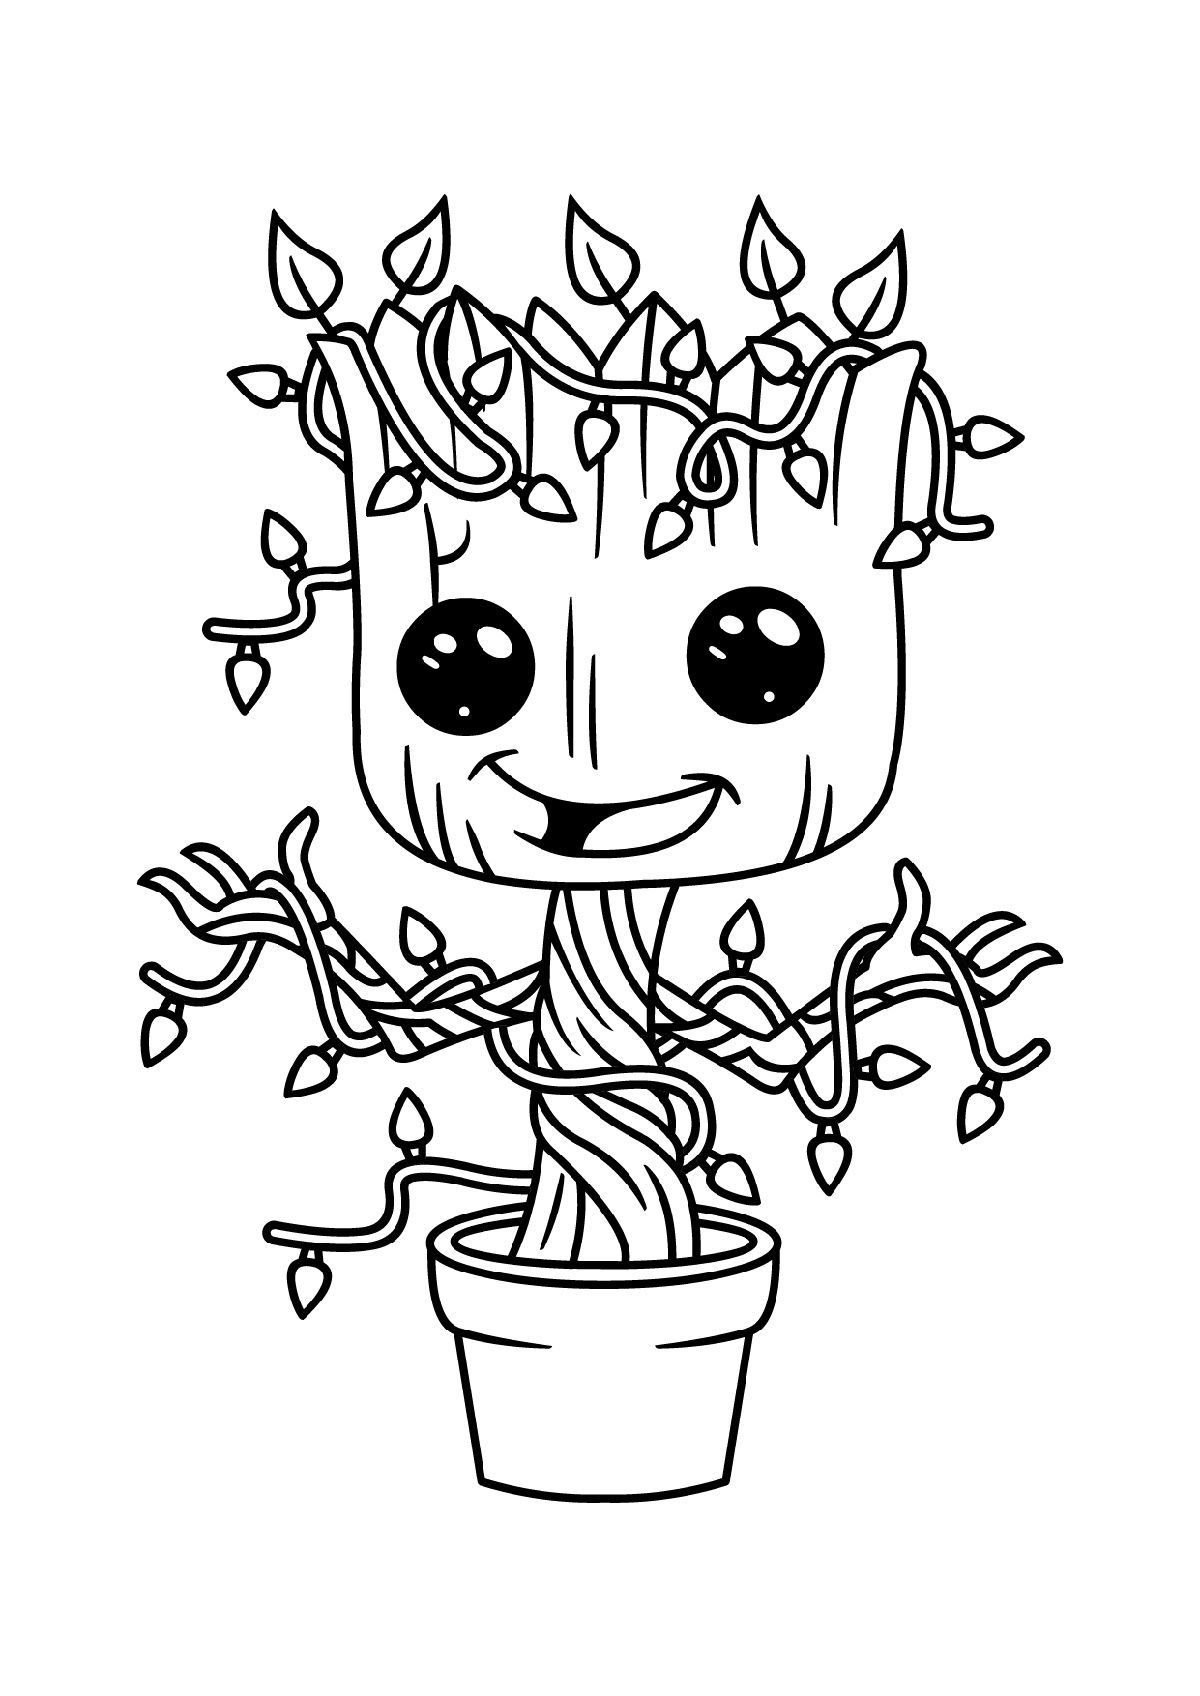 Baby Groot Coloring Page Avengers Coloring Pages Avengers